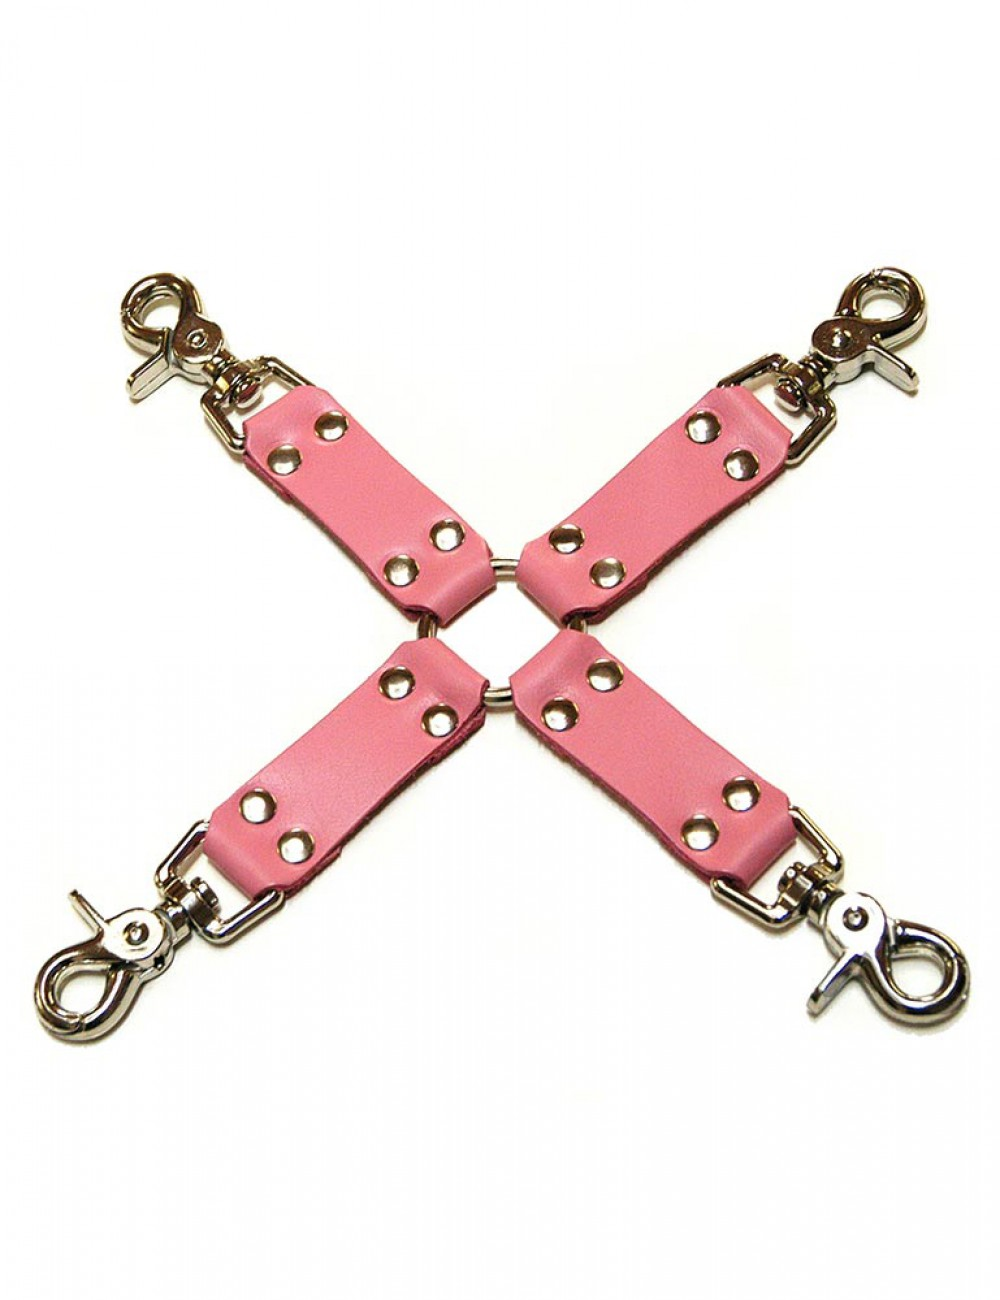 Pink Leather Hog Tie